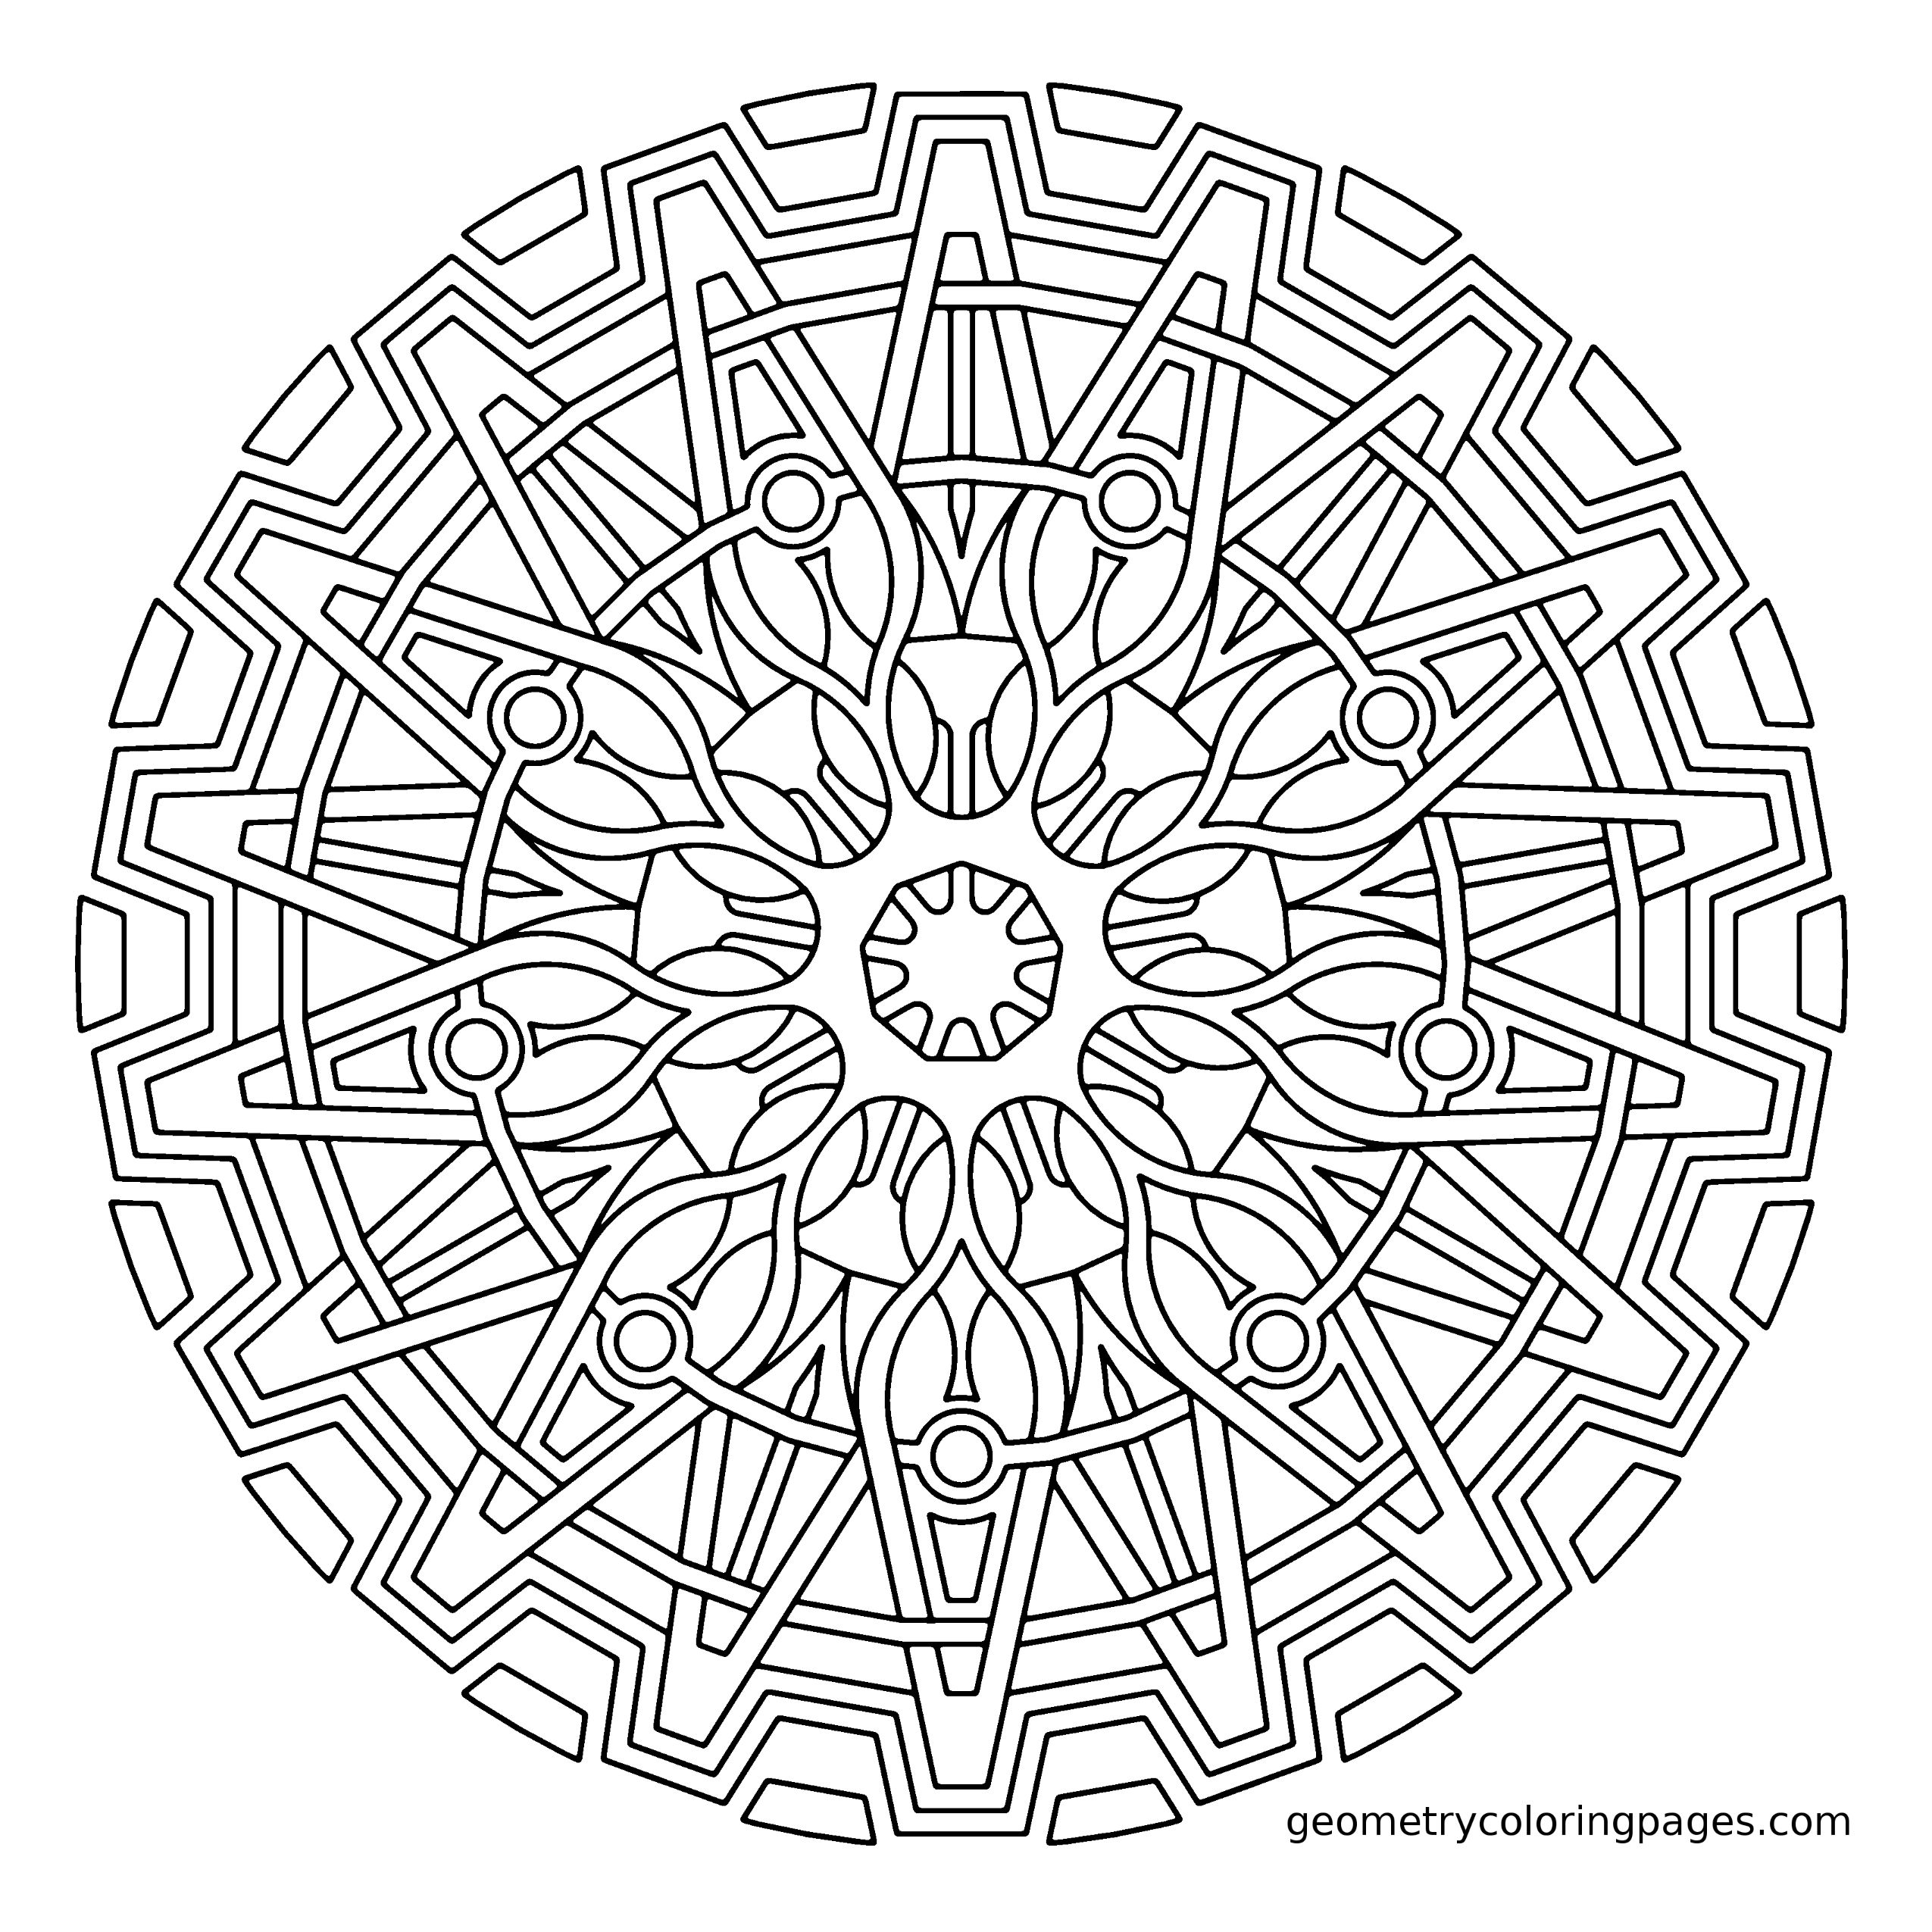 meditation coloring pages meditation coloring pages free at getdrawings free download coloring pages meditation